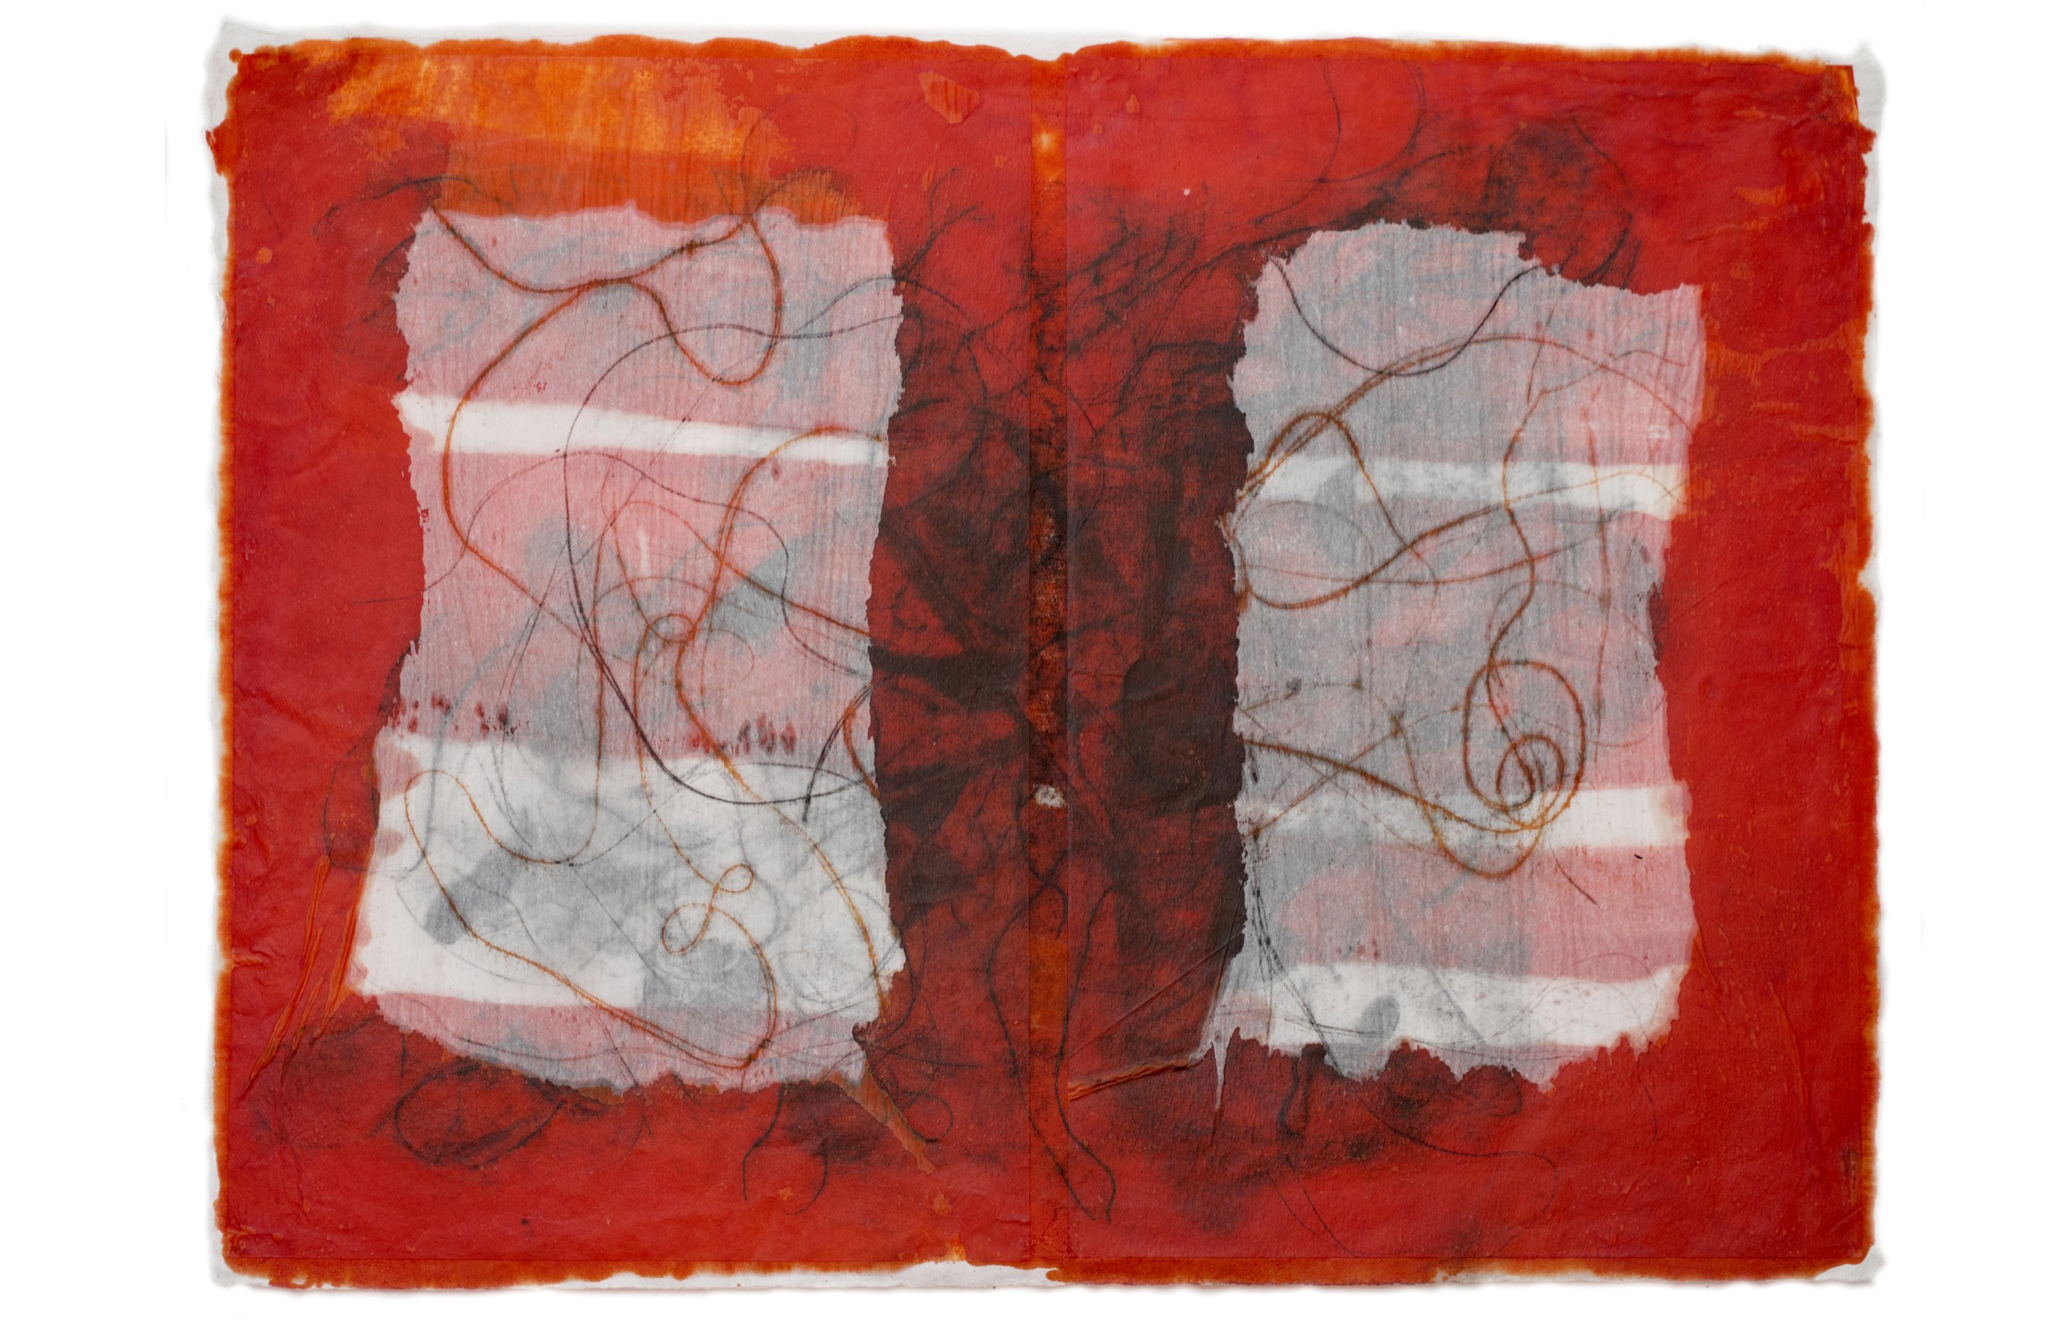 Red Print No. 4